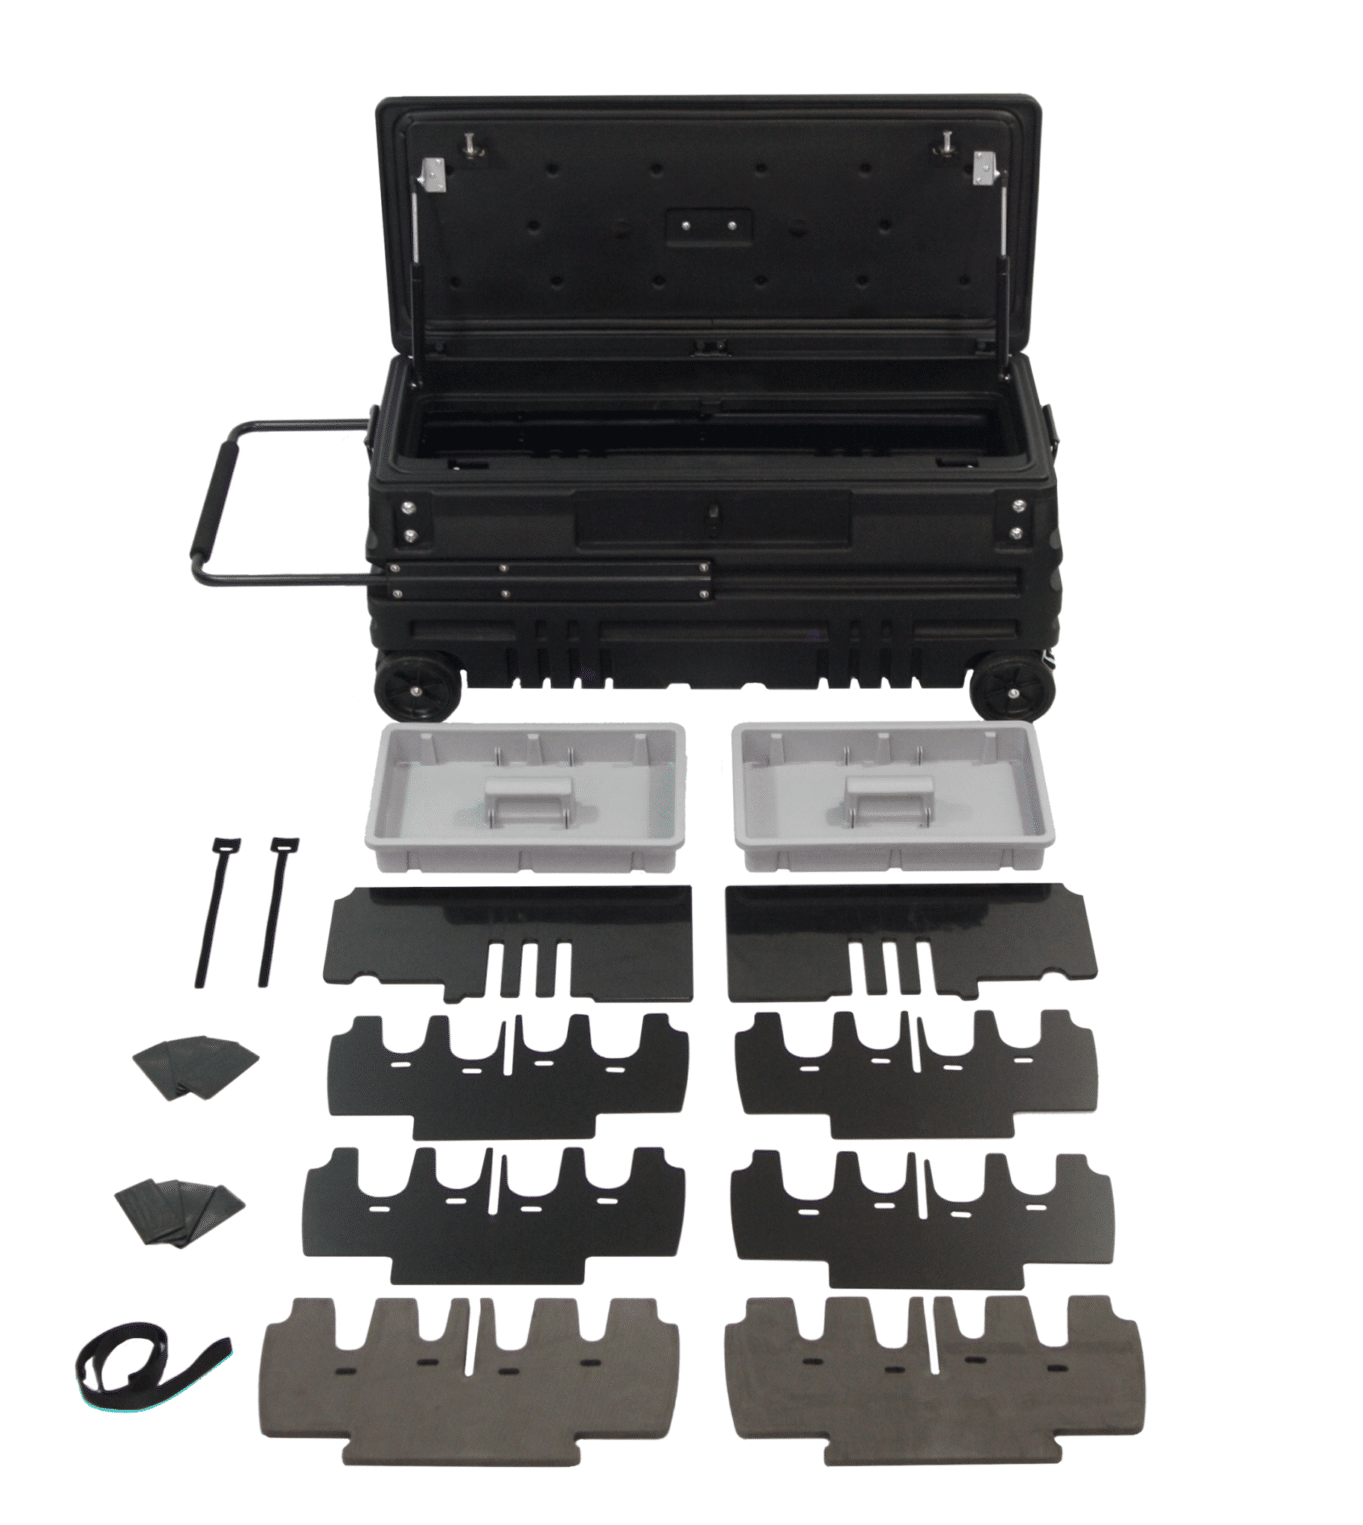 Two Removable Trays, Organizers, Dividers and Gun Racks